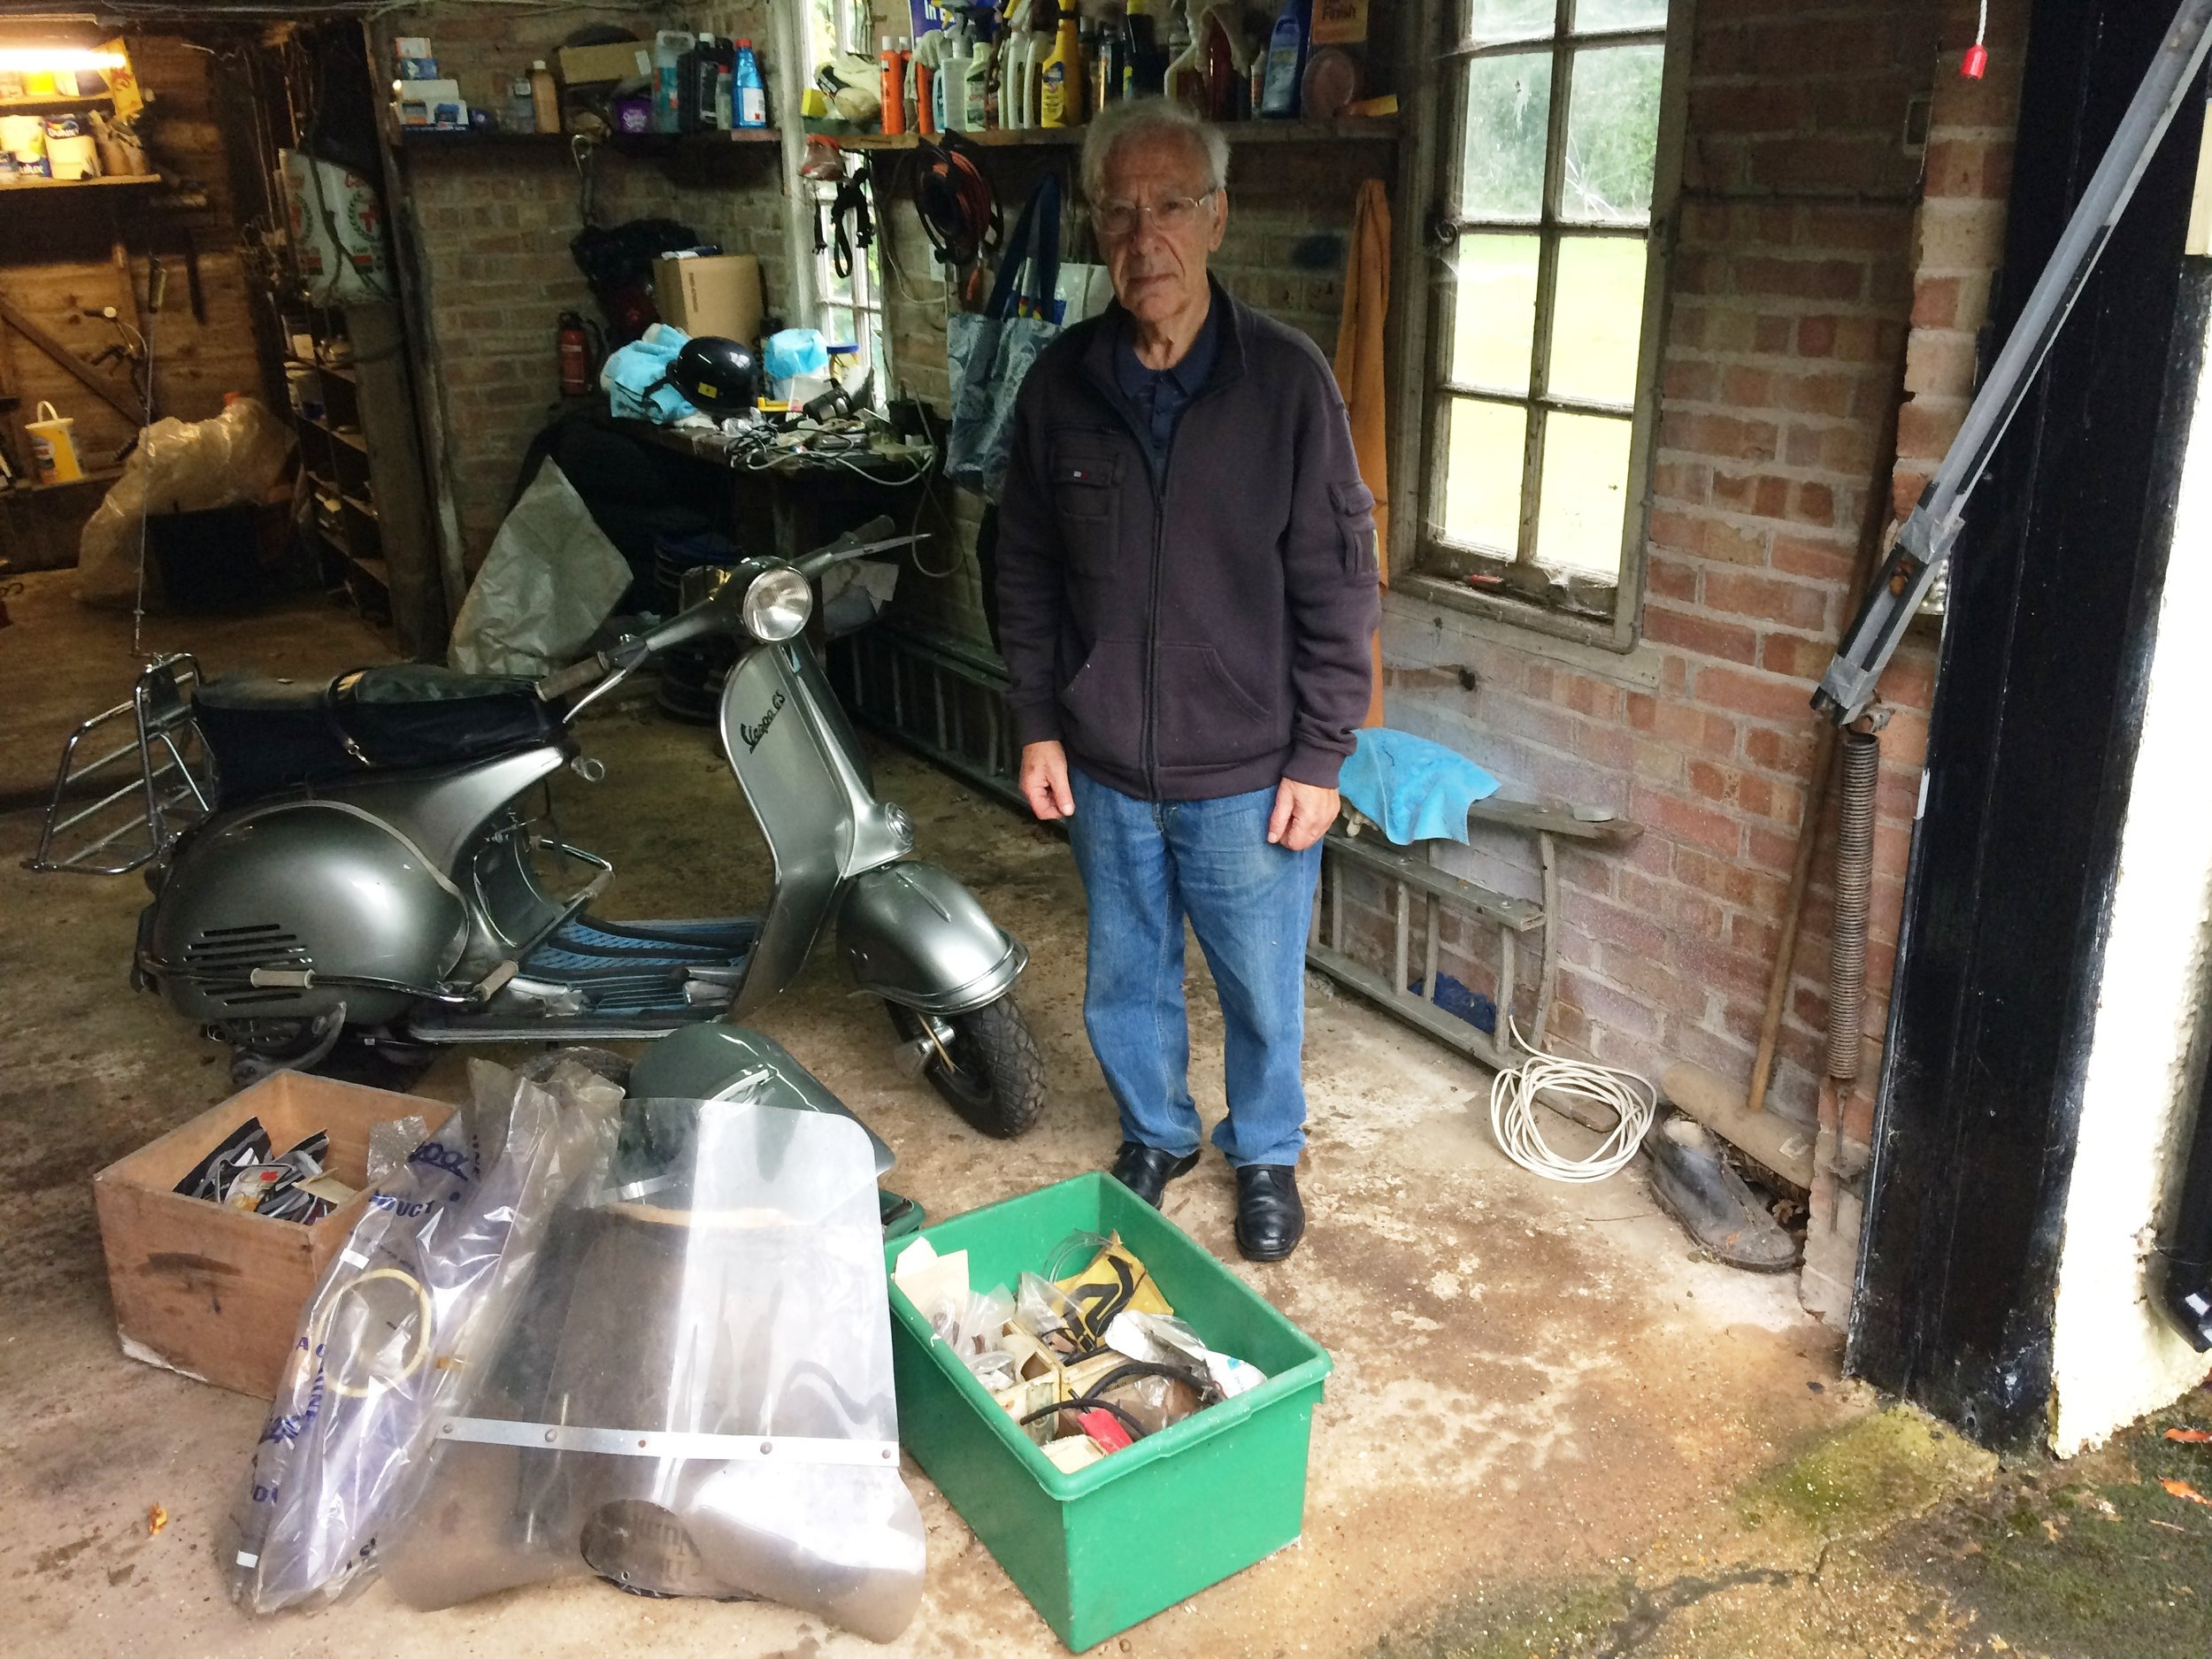 Arrivederci - Ken Morris with his GS150 VS4 for the last time before being collected by its new owner